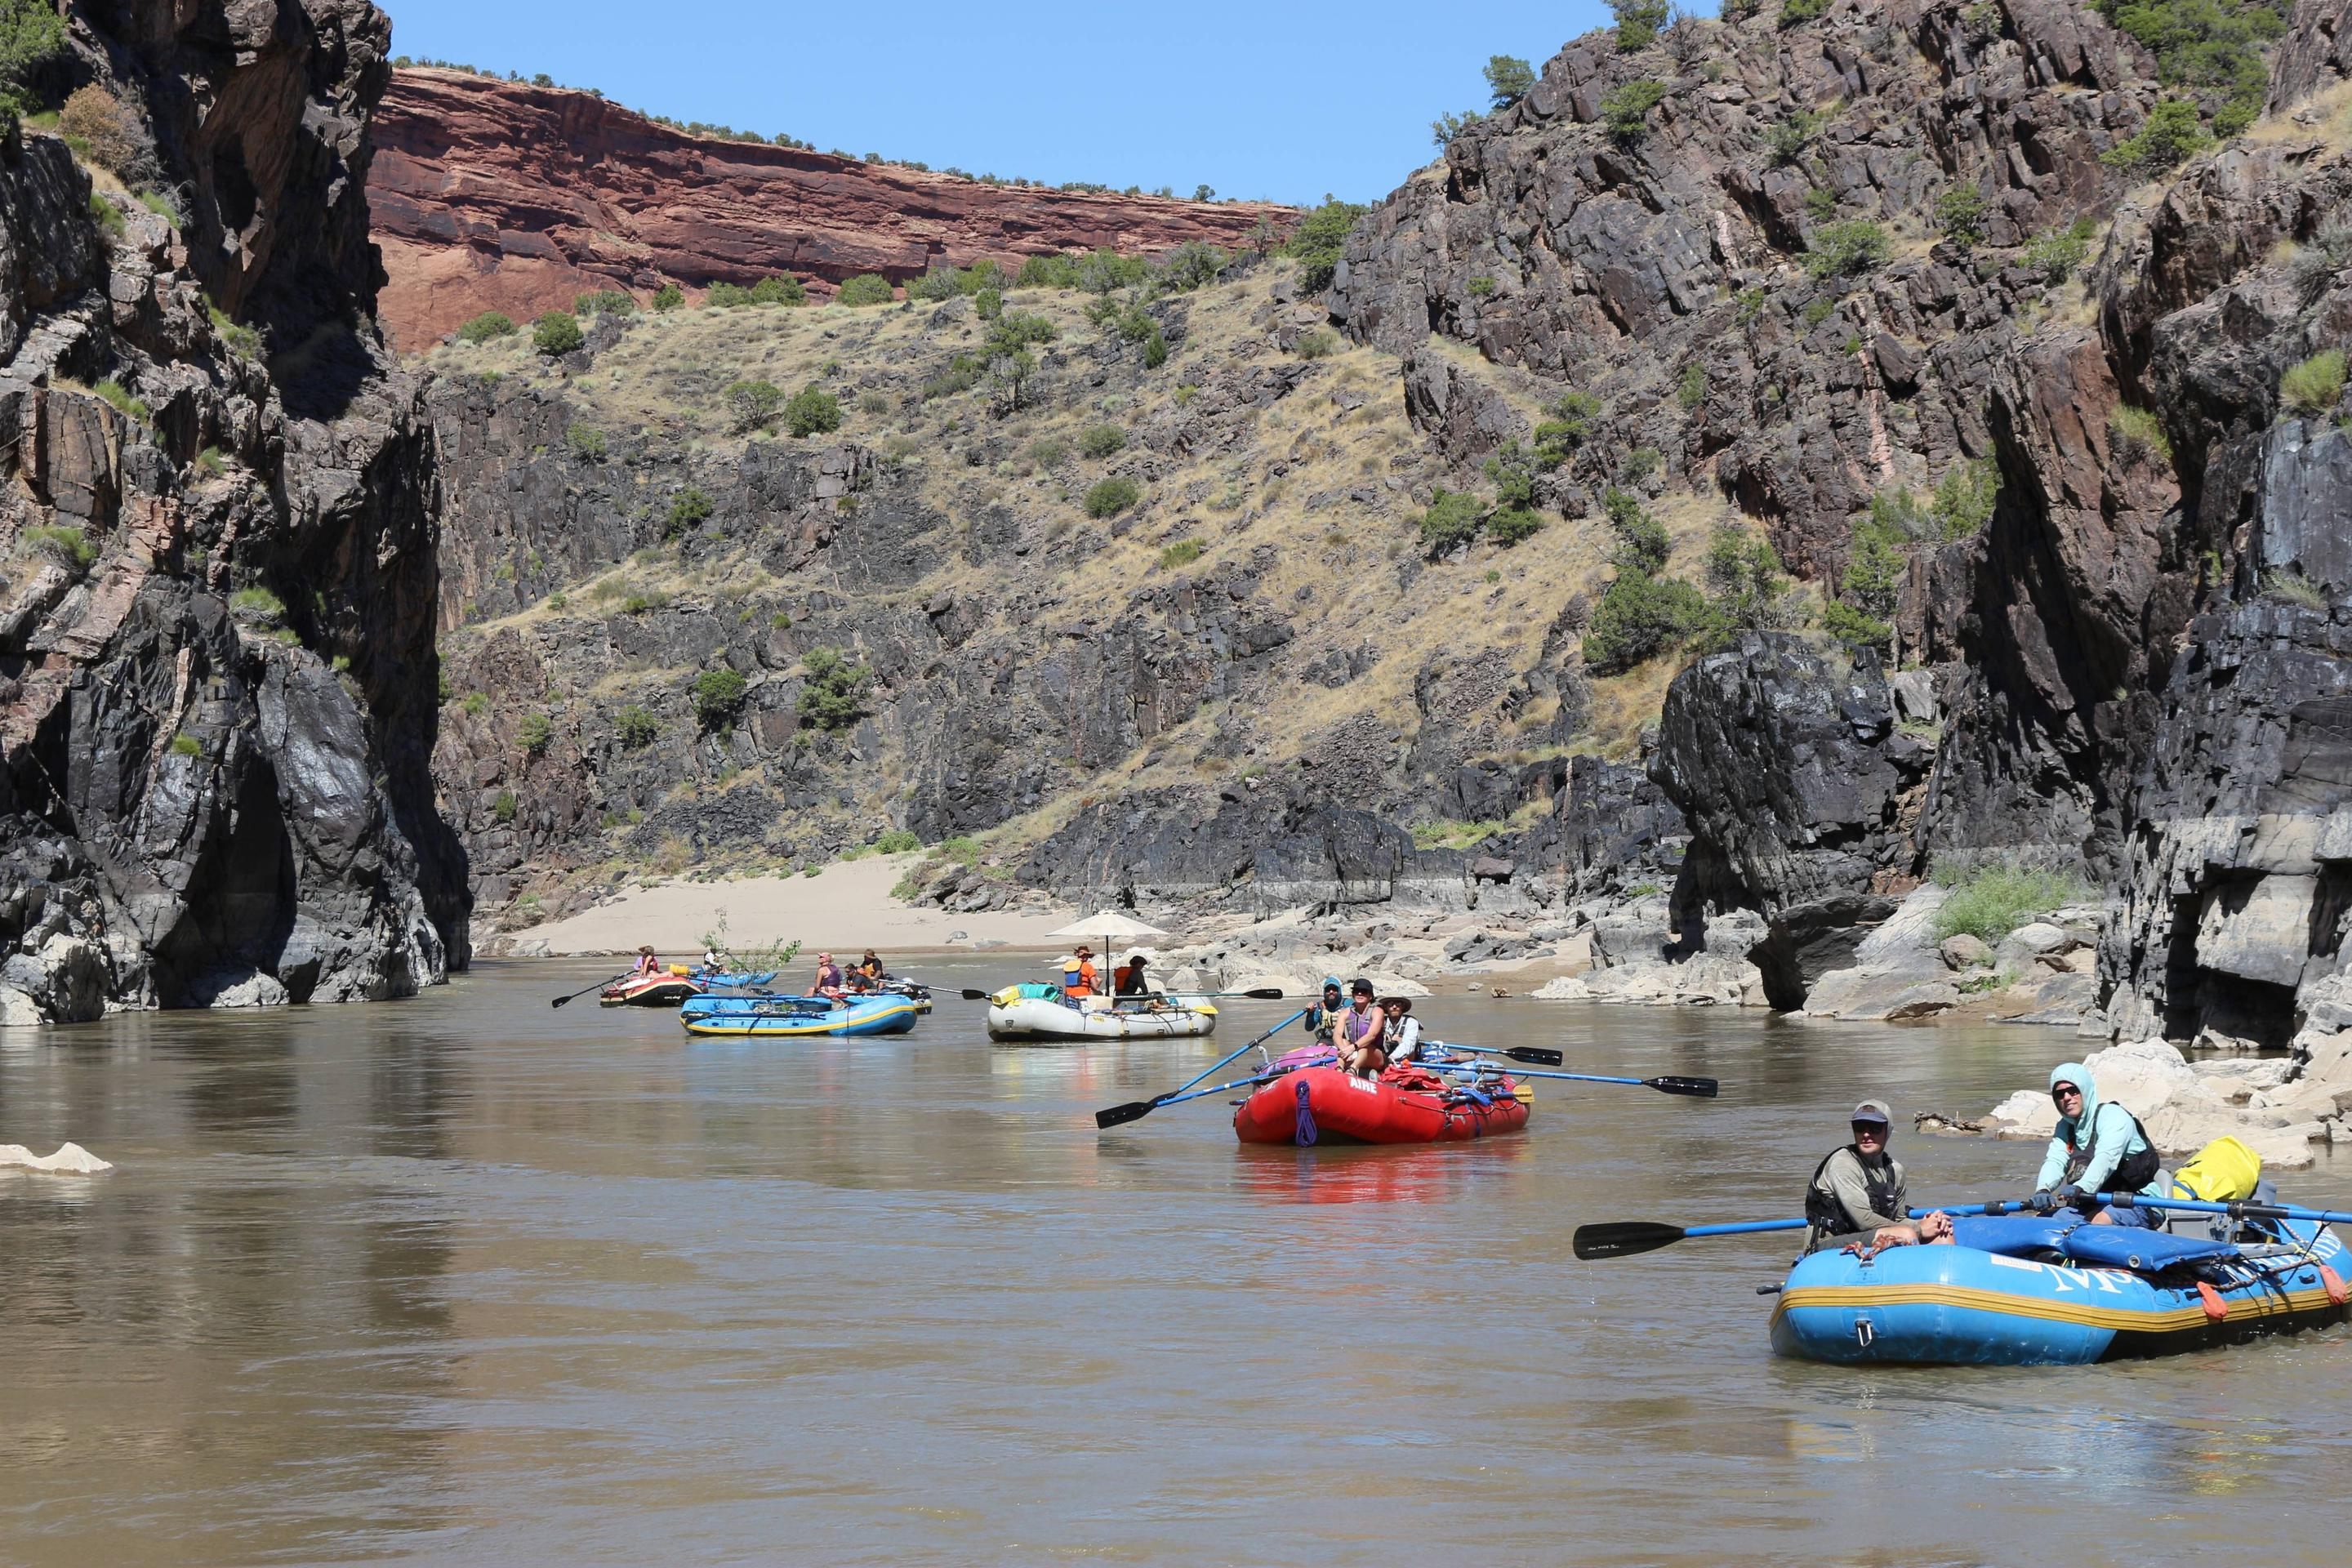 Boaters in the canyon